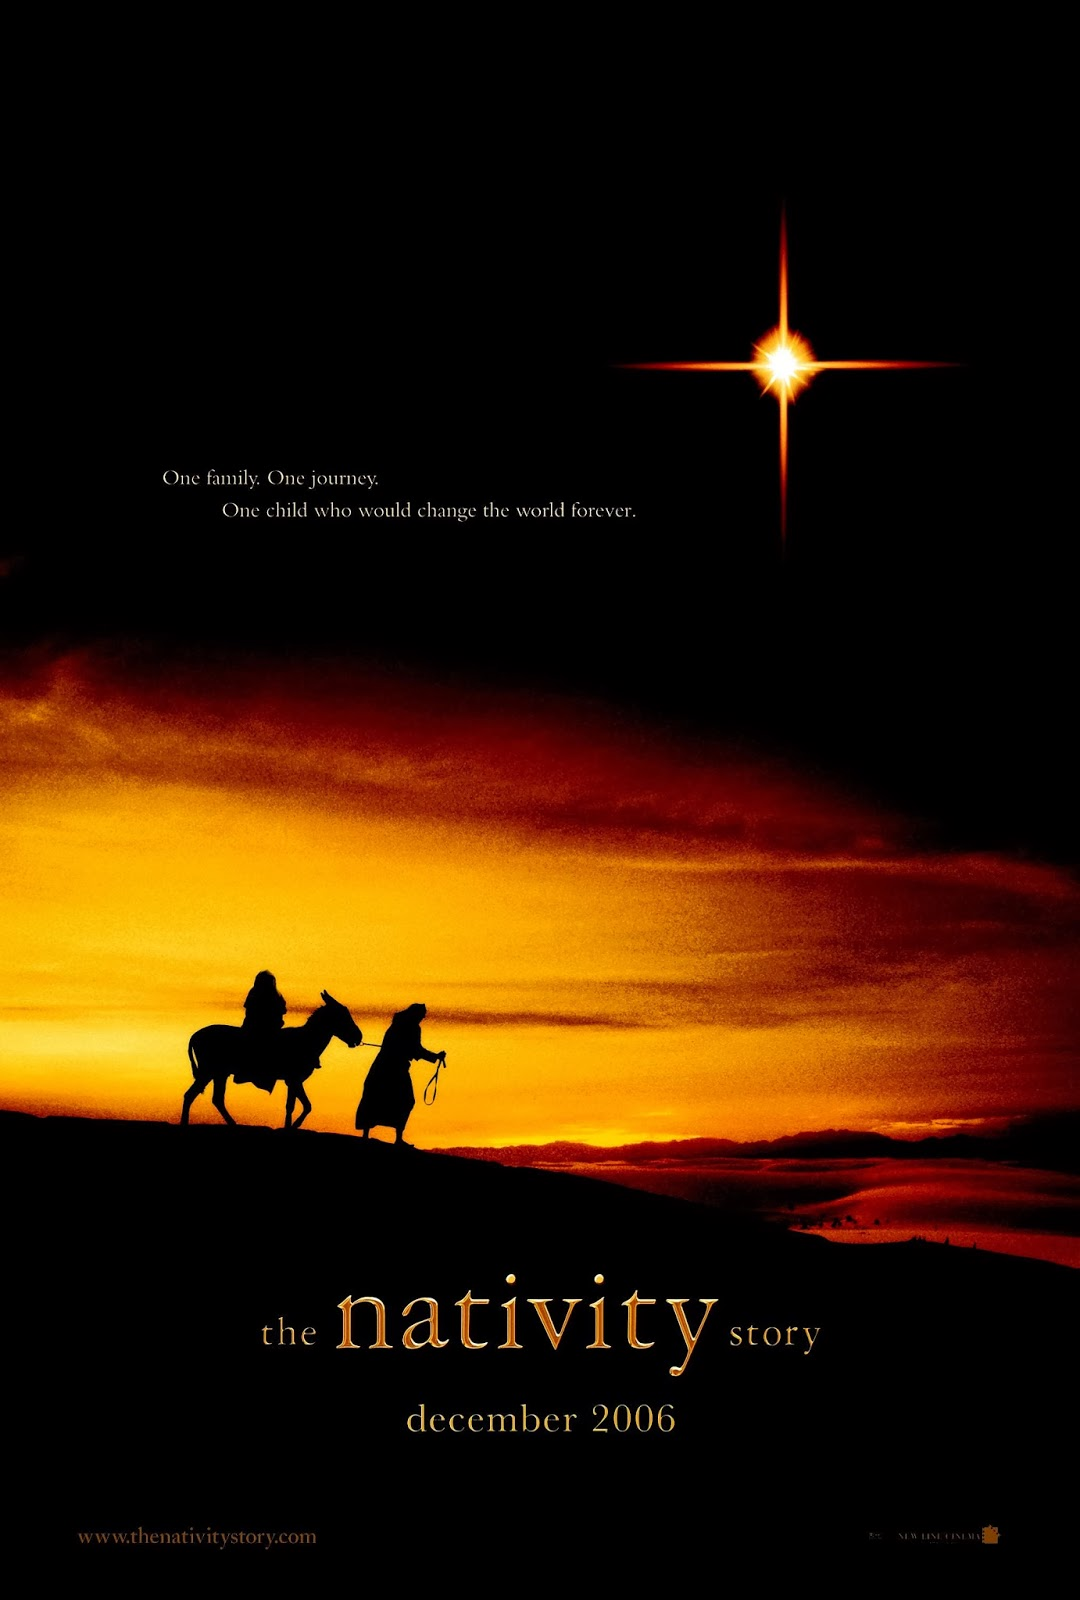 The Nativity Story Wallpapers   HD Wallpapers Blog 1080x1600